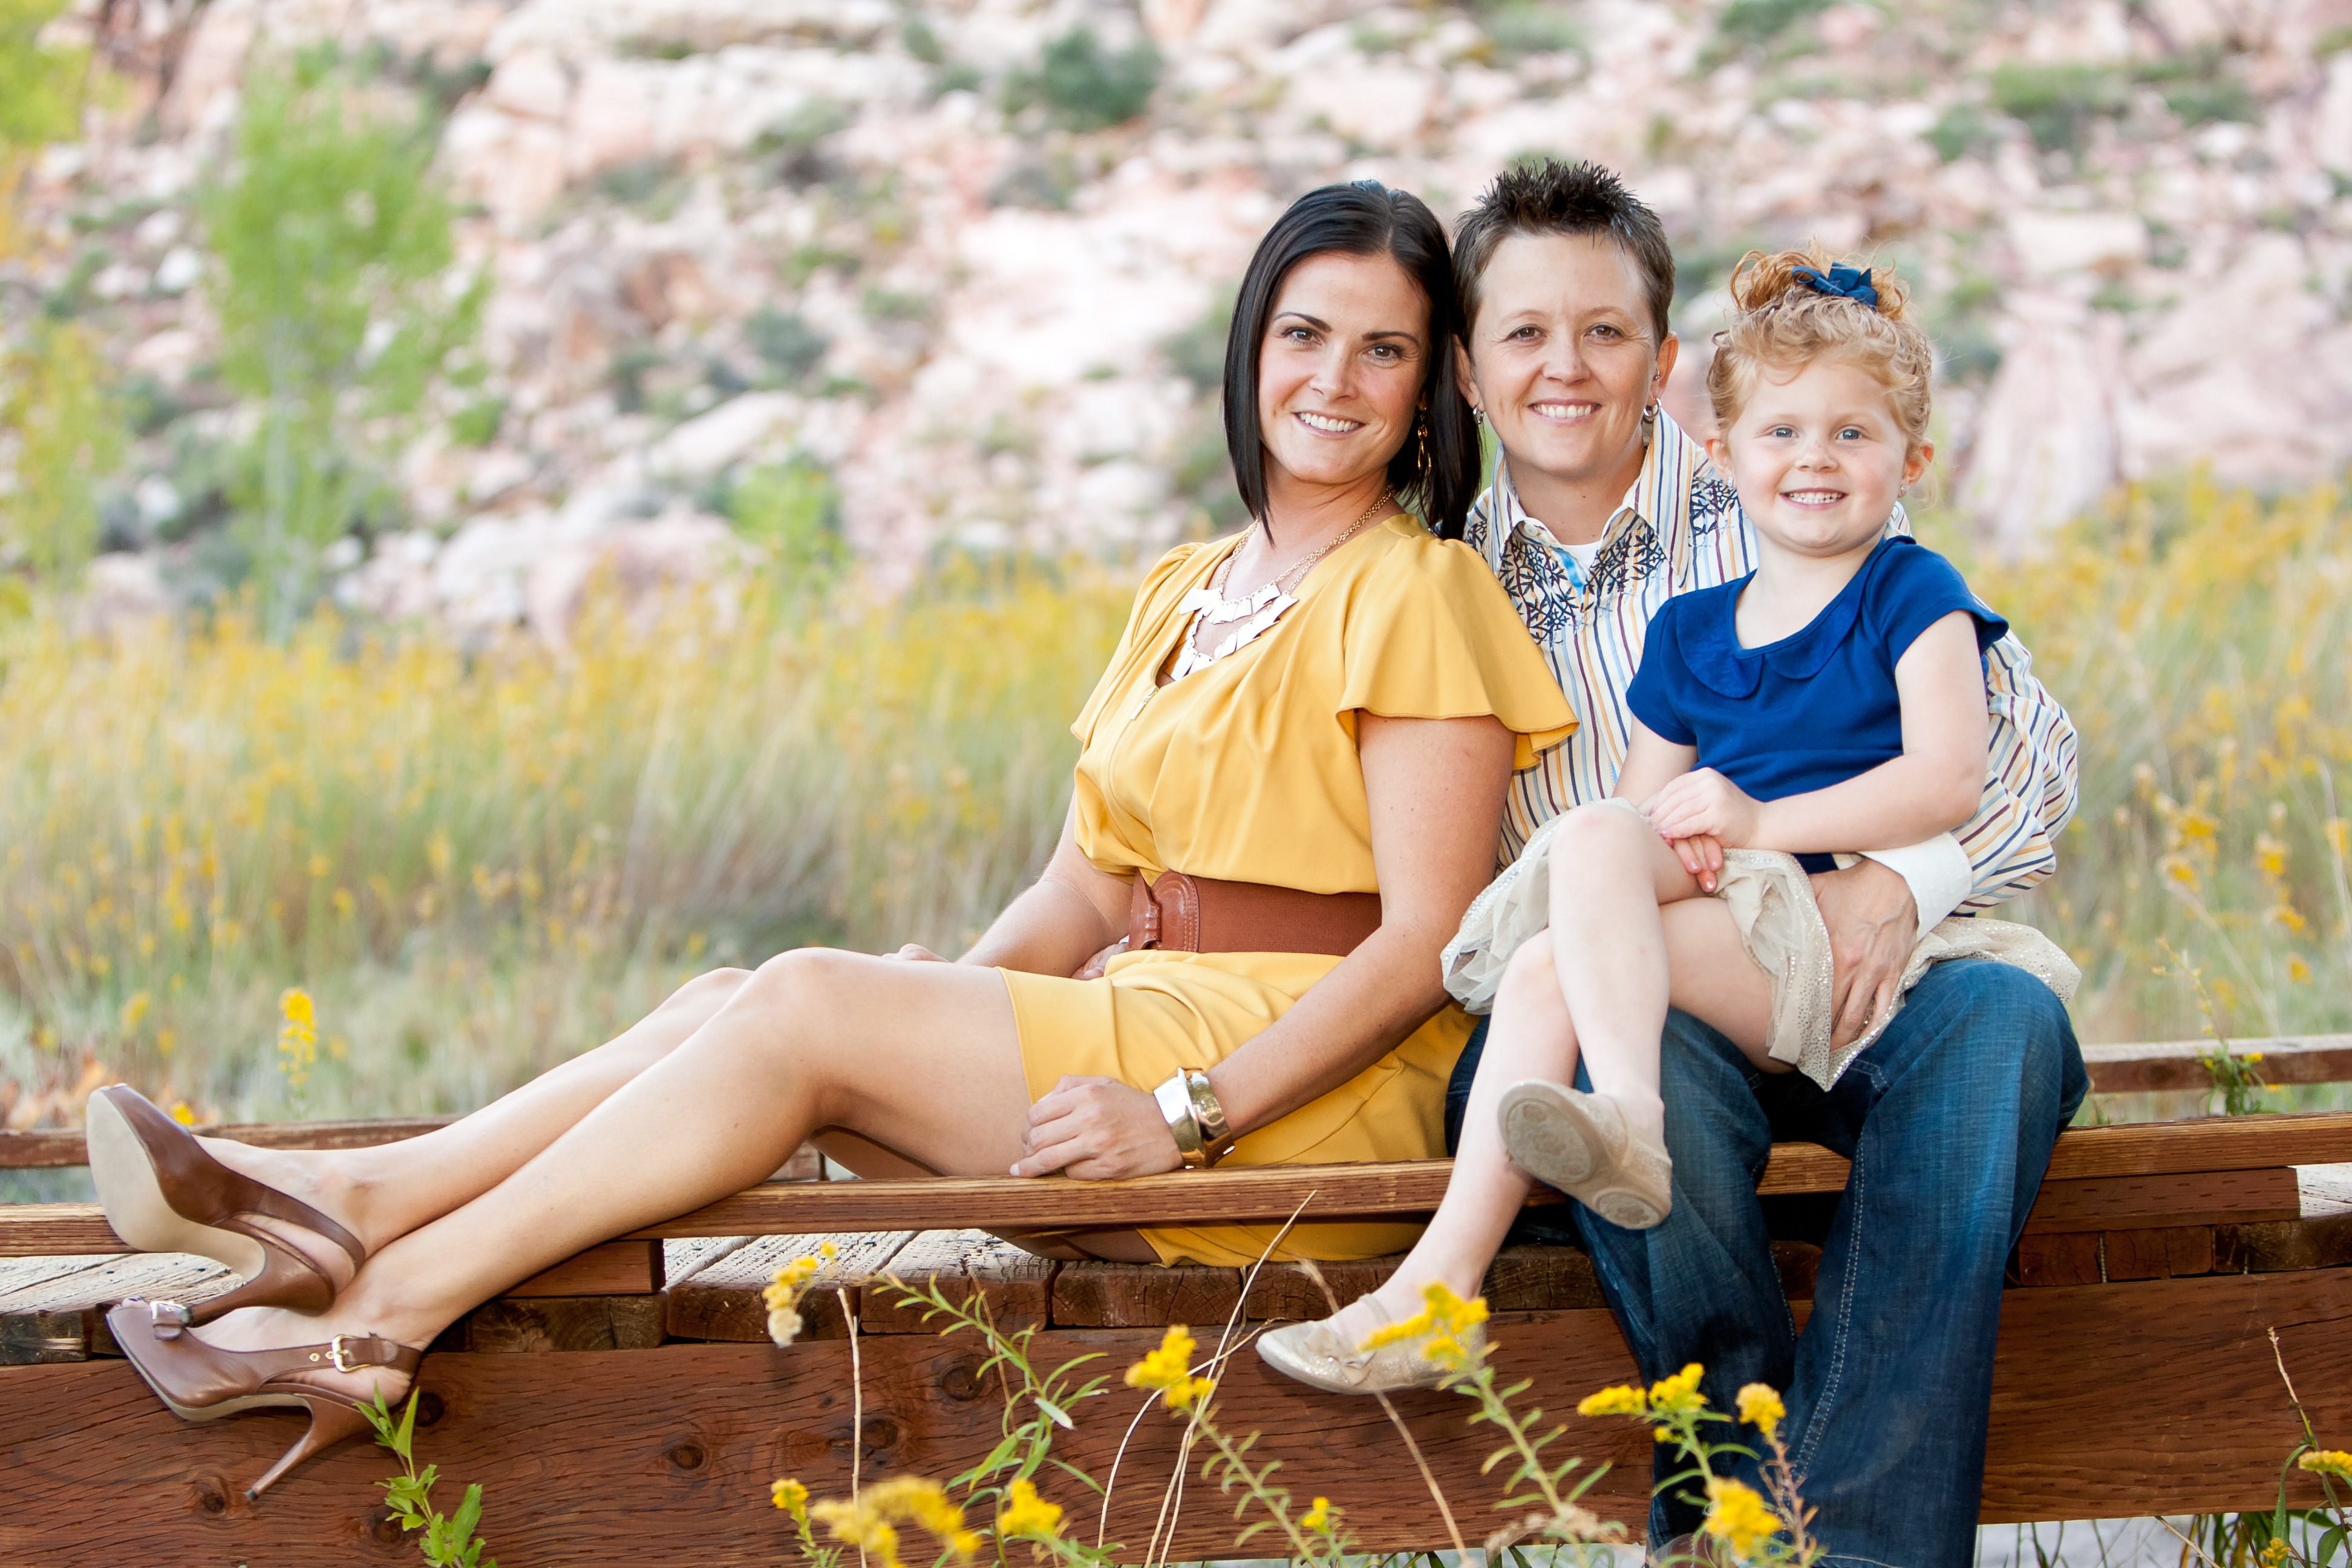 6 families who nailed color coordinated portraits huffpost life